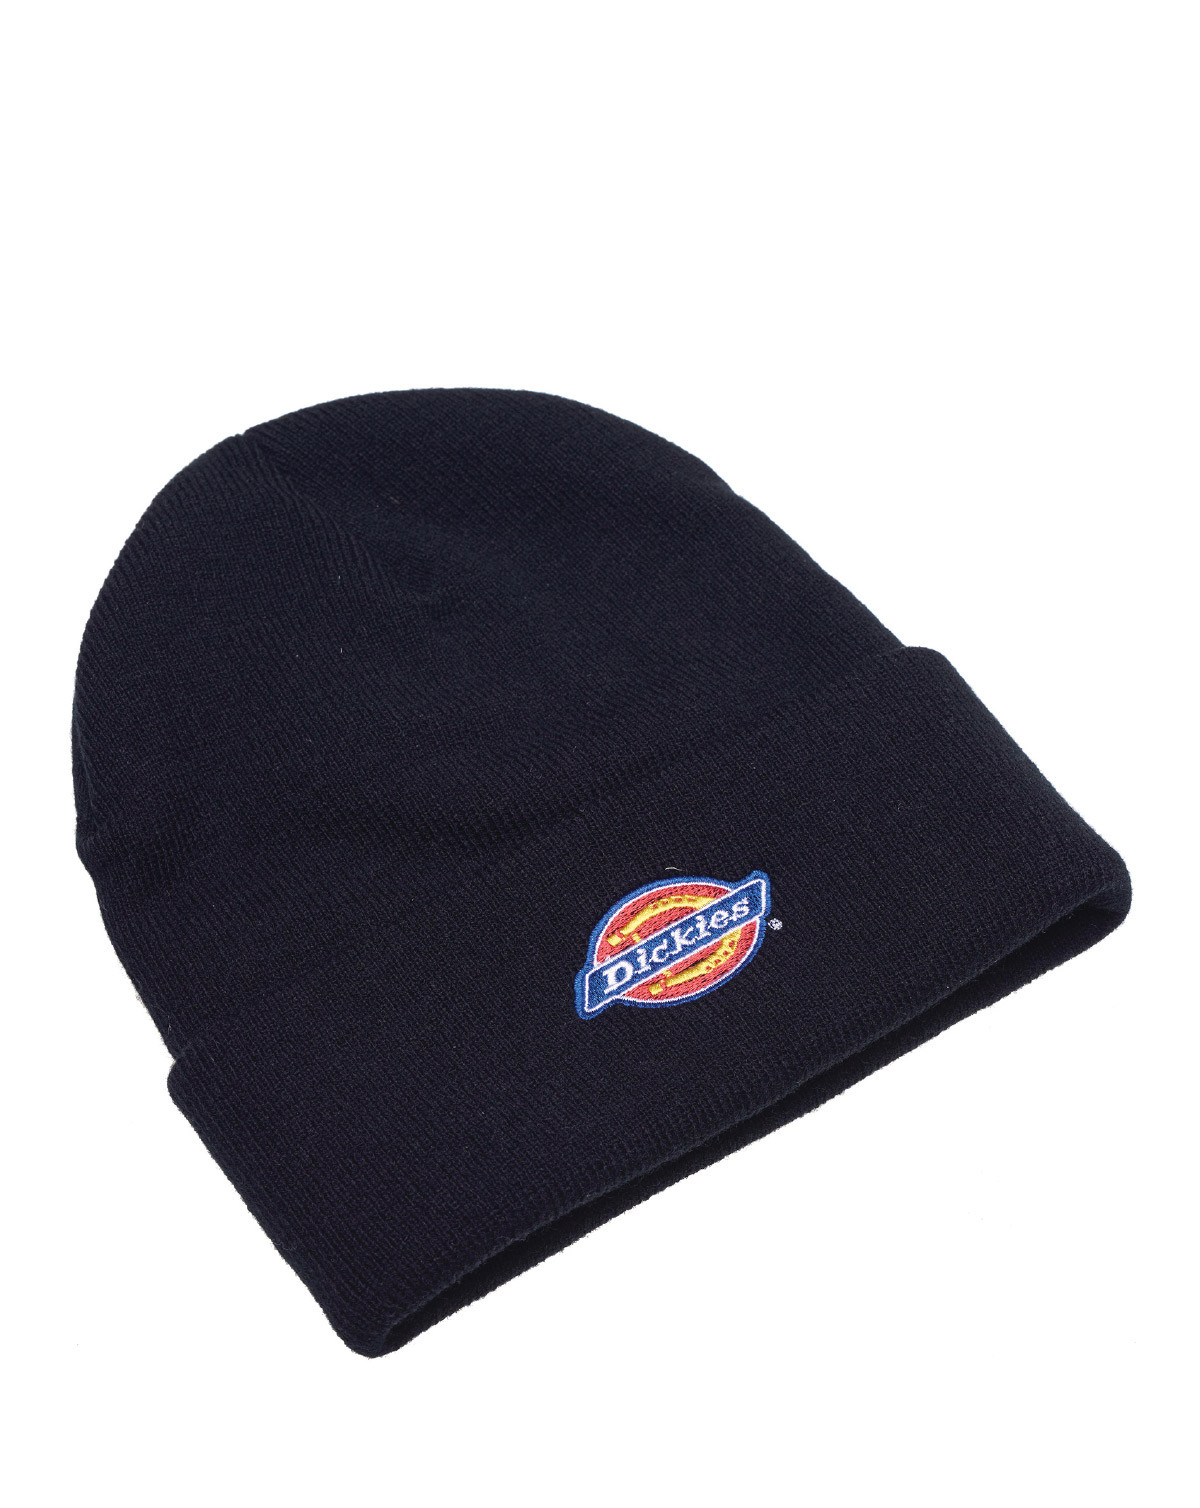 Image of   Dickies Colfax Beanie (Sort, One Size)